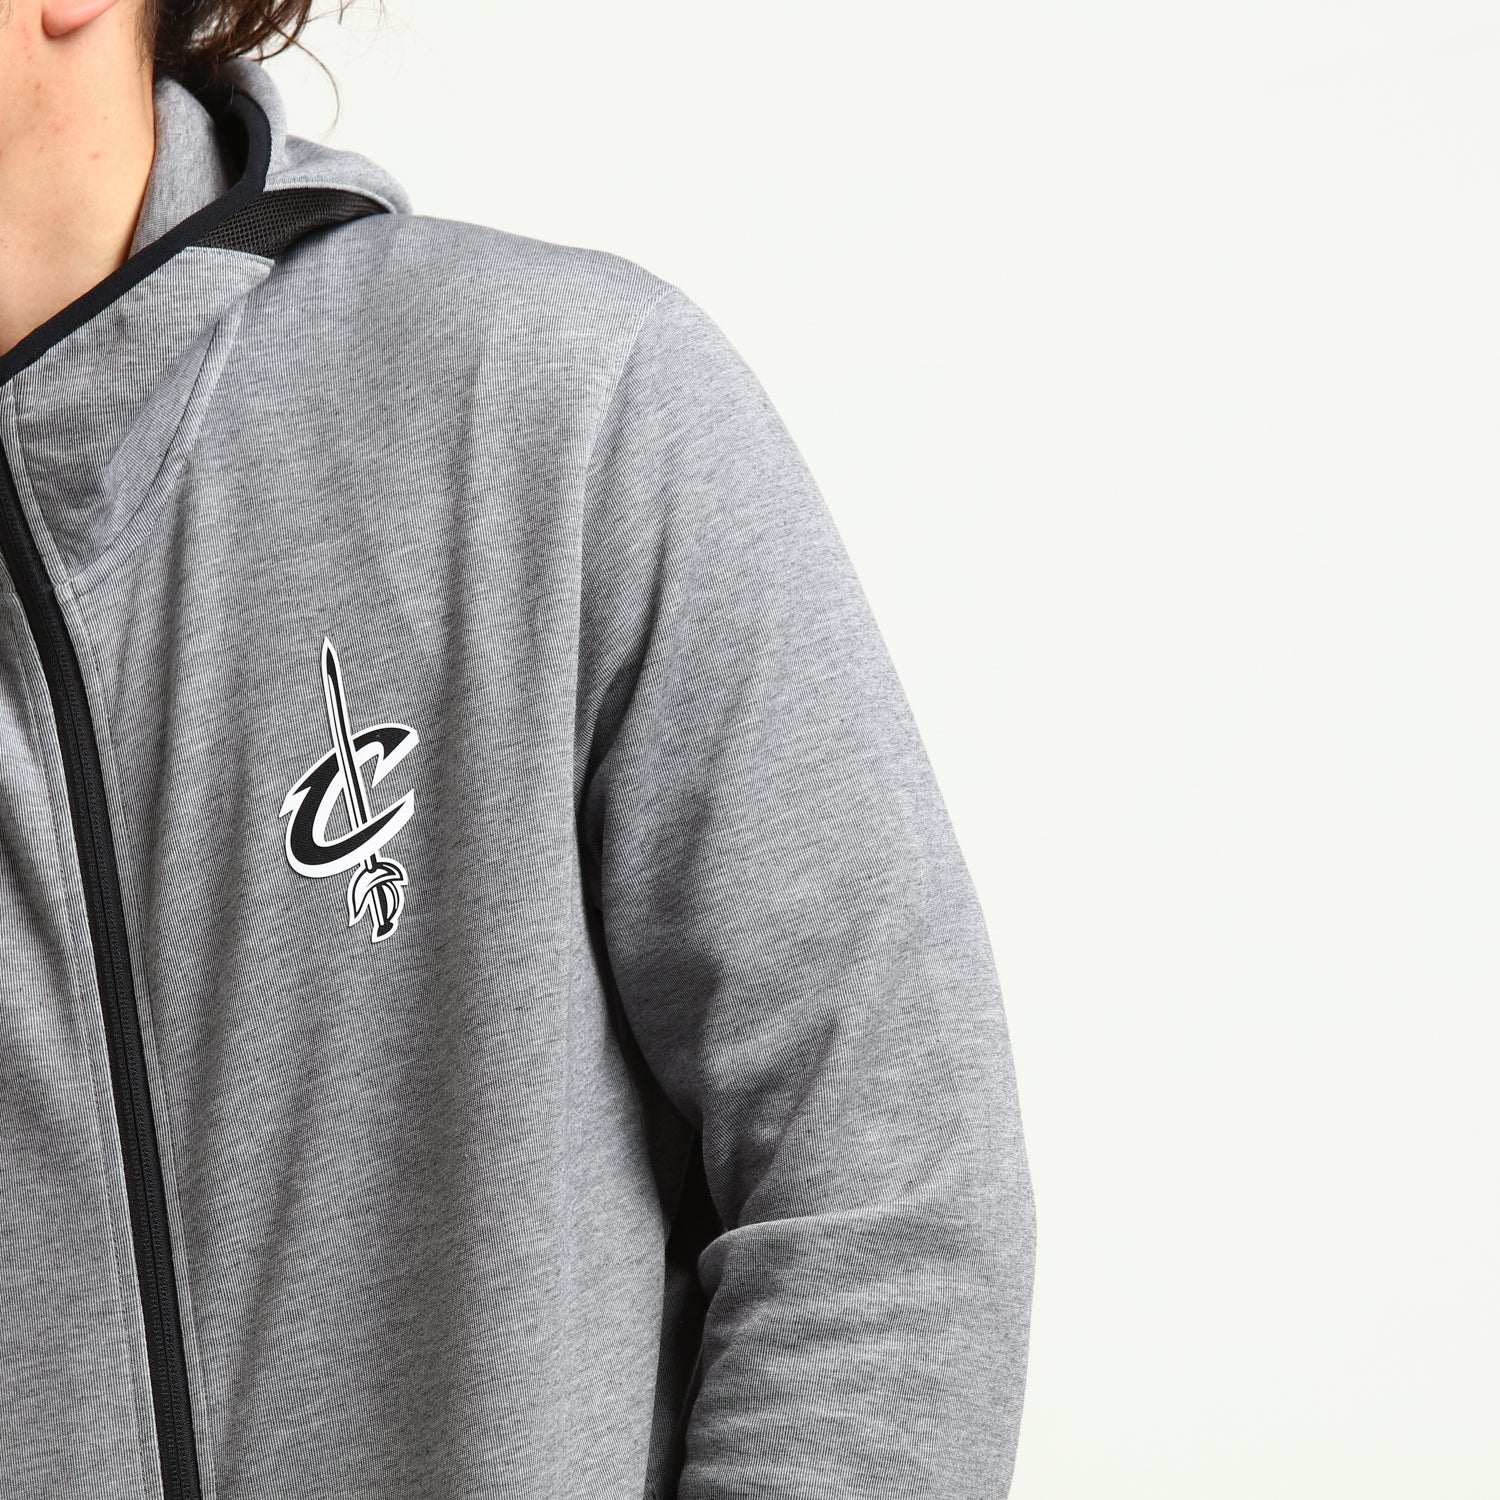 Nike nike jordans with kevlar and gold price guide | Cleveland Cavaliers Dry Showtime Full Zip Hoodie HeatherBlackWhite